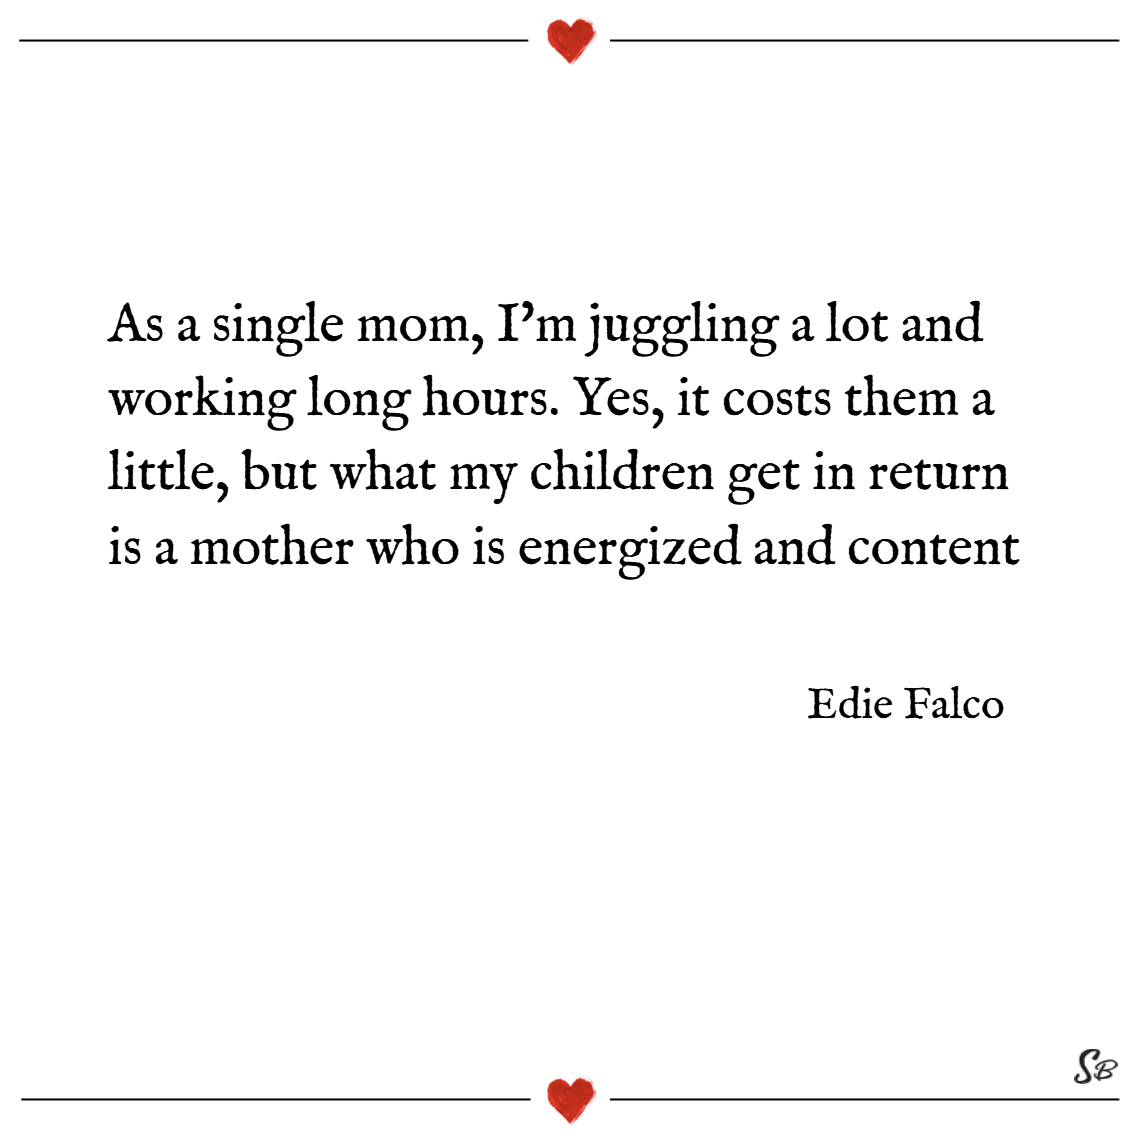 As a single mom, i'm juggling a lot and working long hours. yes, it costs them a little, but what my children get in return is a mother who is energized and content. – edie falco